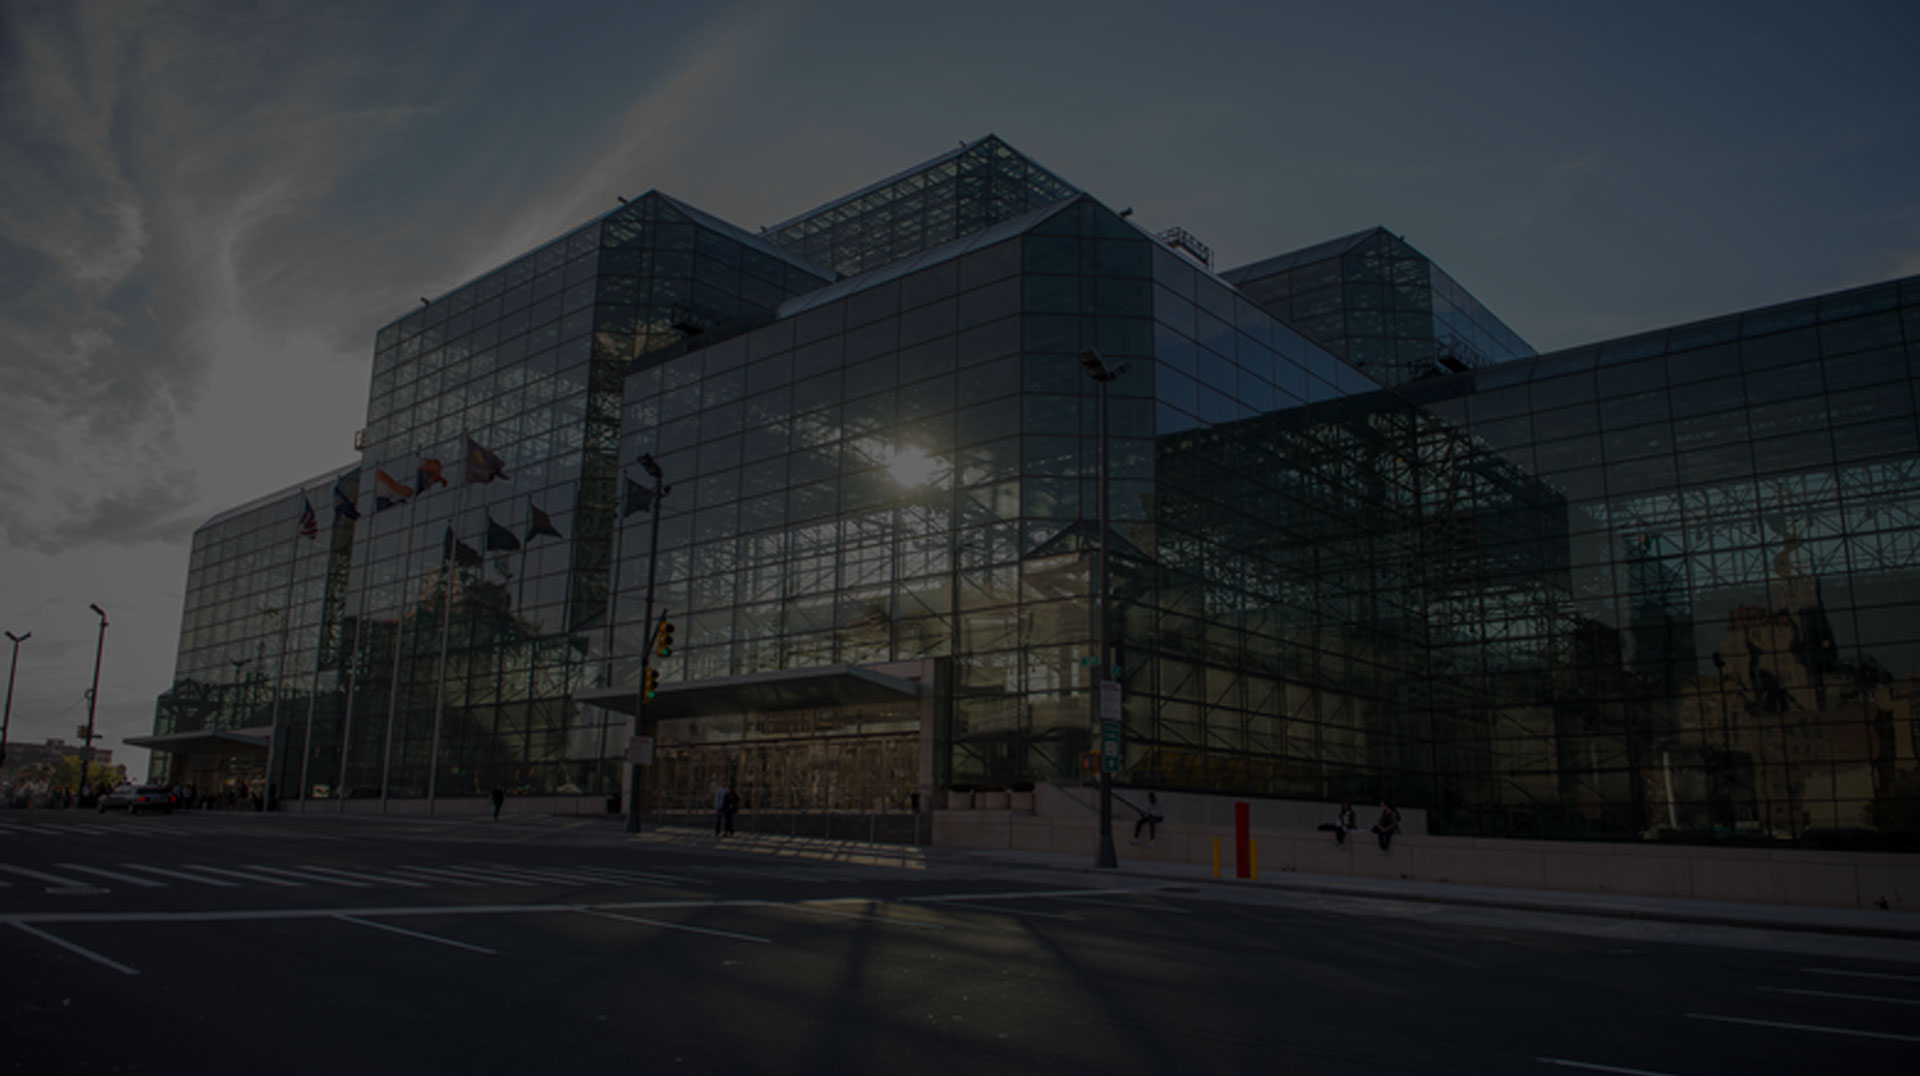 Jacob Javits Center | Event and Exhibition Venues in New